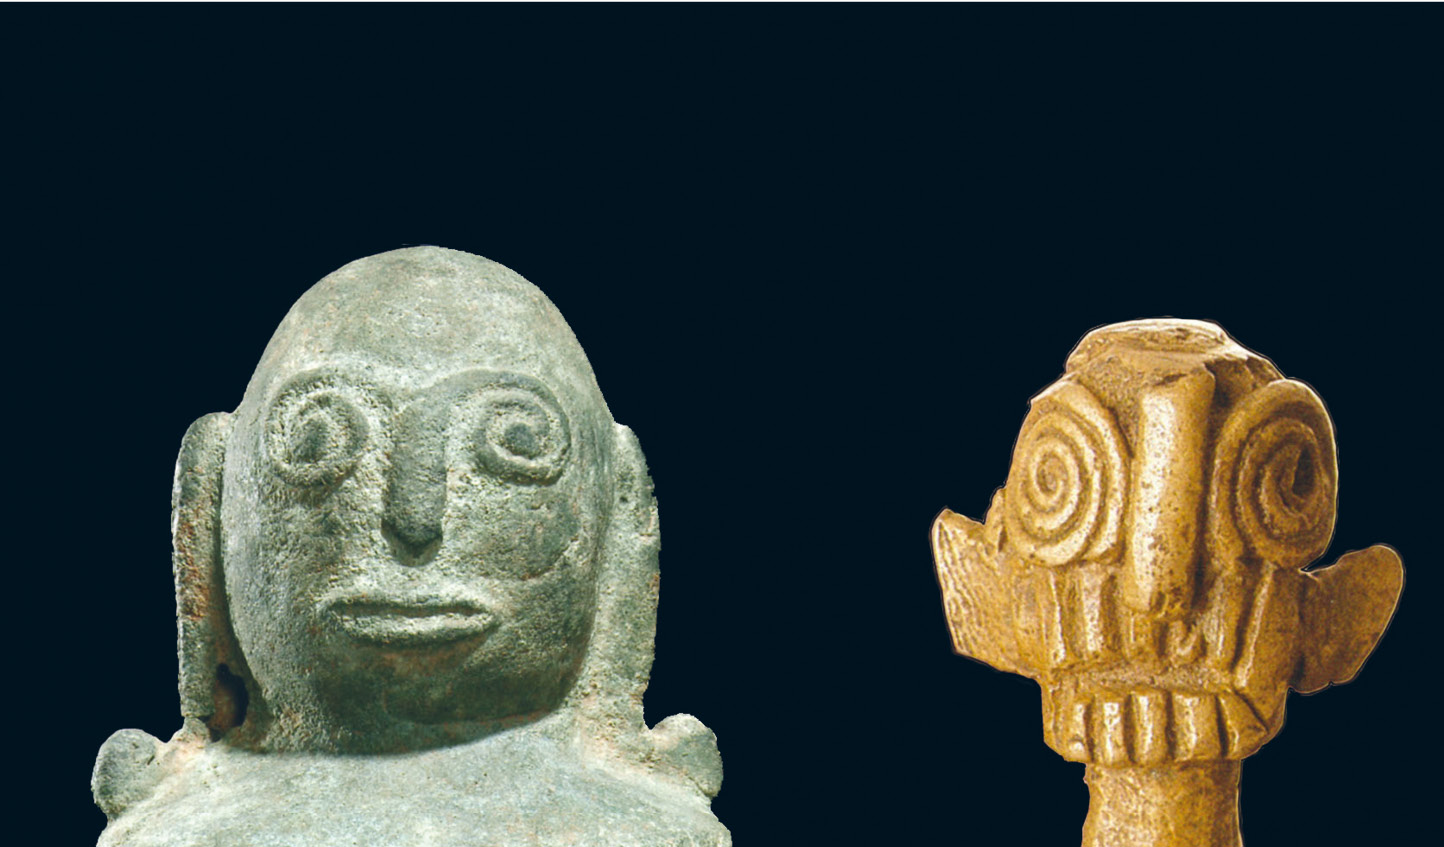 top A green-metal spiral eyed anthropomorphic figure compared with a brass figurine with simialr eyes from Central Sulawesi (18th century AD). Above A diagram showing the workings of a typical qanat.